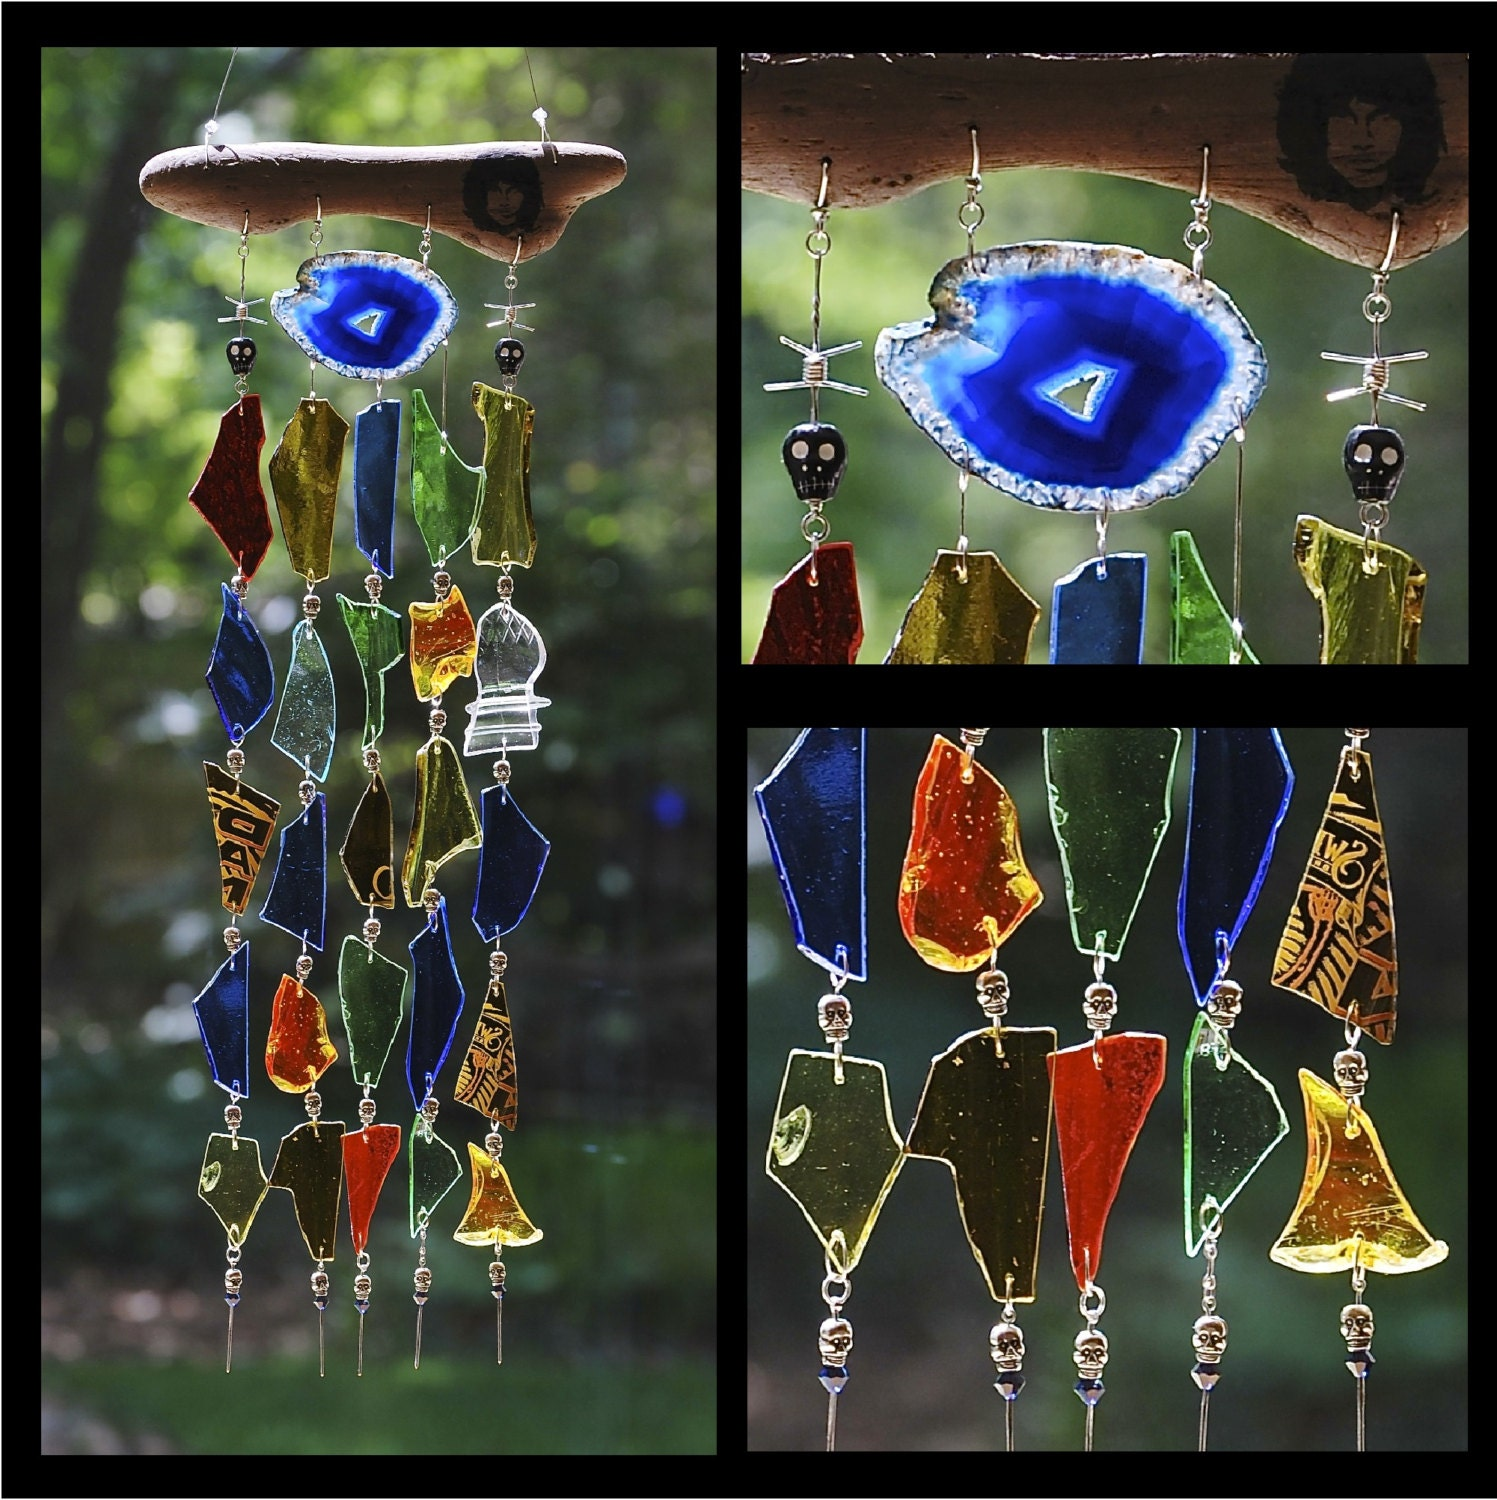 Recycled glass wind chimes ode to l a reserved for carol for Wind chimes from recycled materials